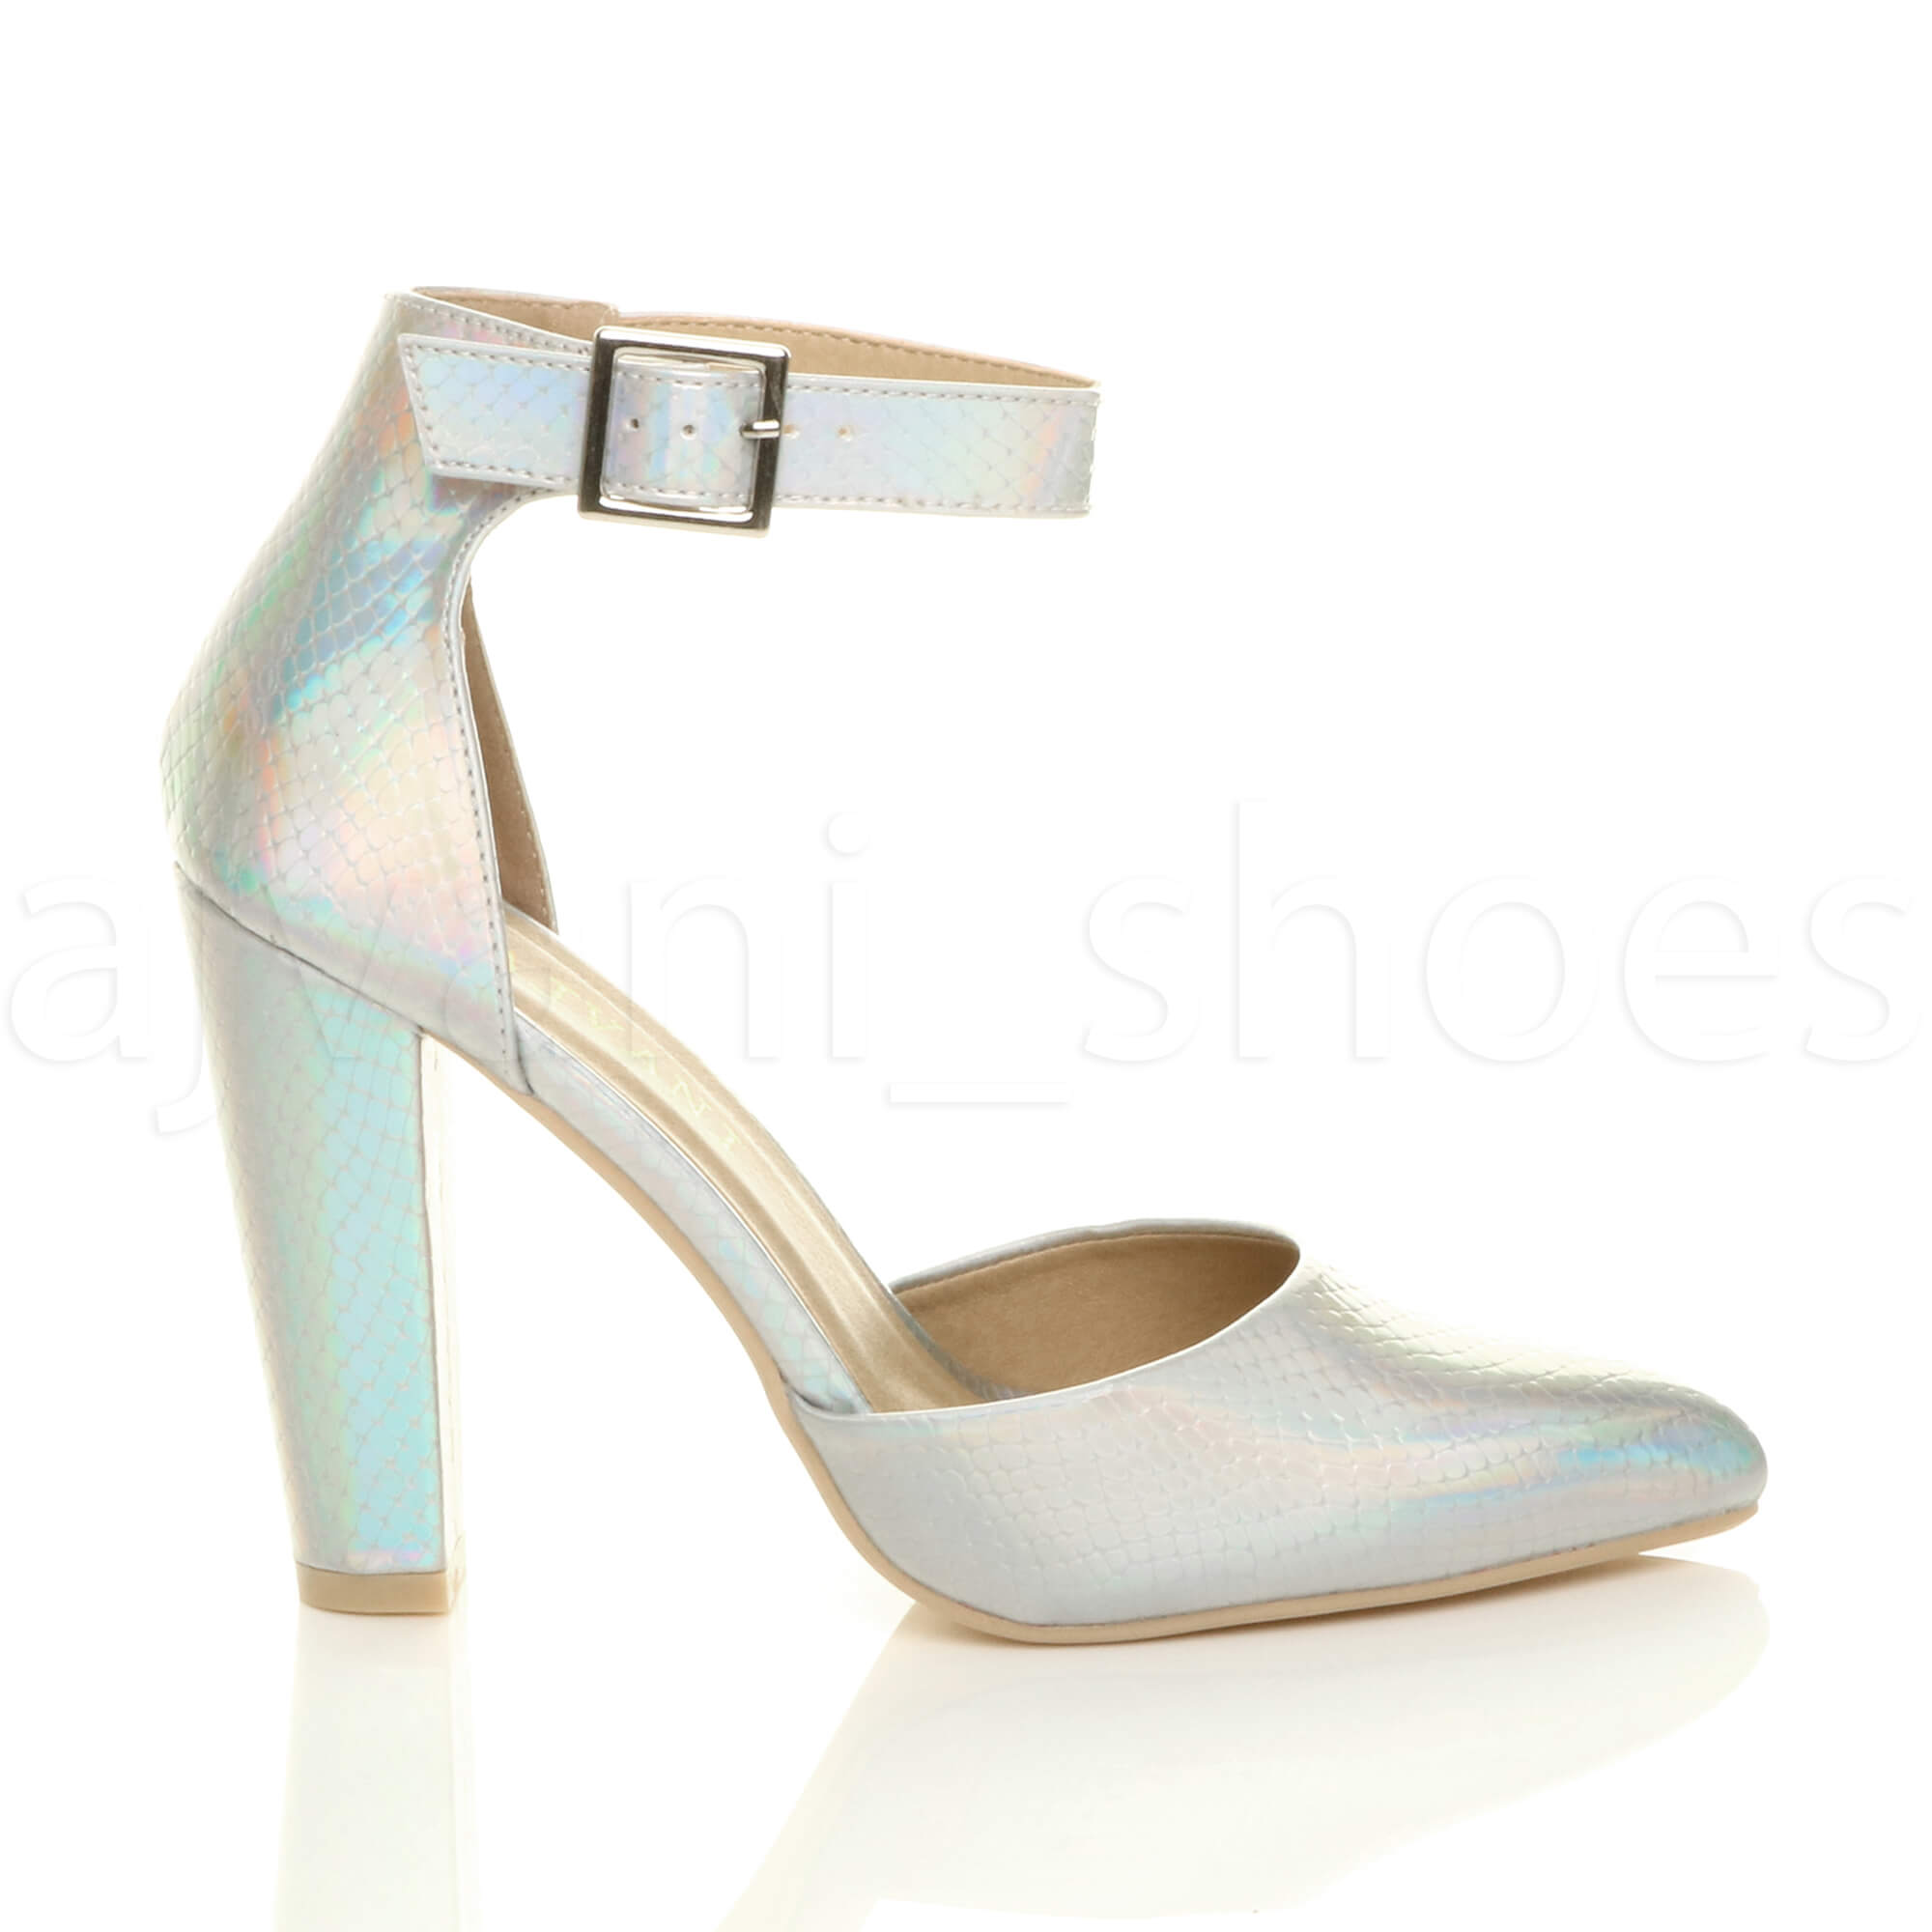 WOMENS-LADIES-HIGH-BLOCK-HEEL-ANKLE-STRAP-BUCKLE-POINTED-COURT-SHOES-SIZE thumbnail 164